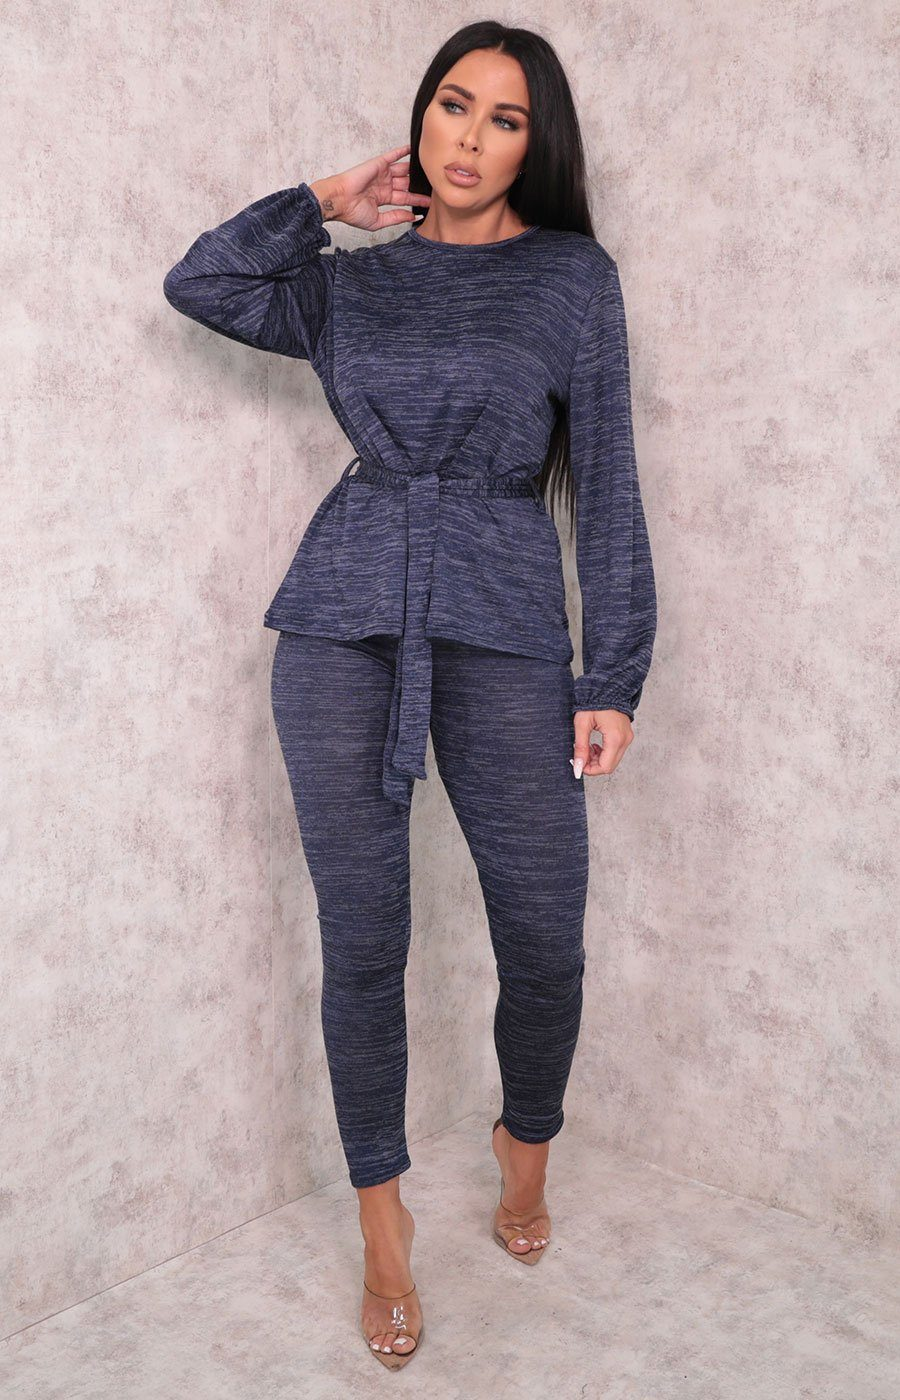 Blue Tie Front Cuffed Sleeve Leggings Loungewear Set - Eliza